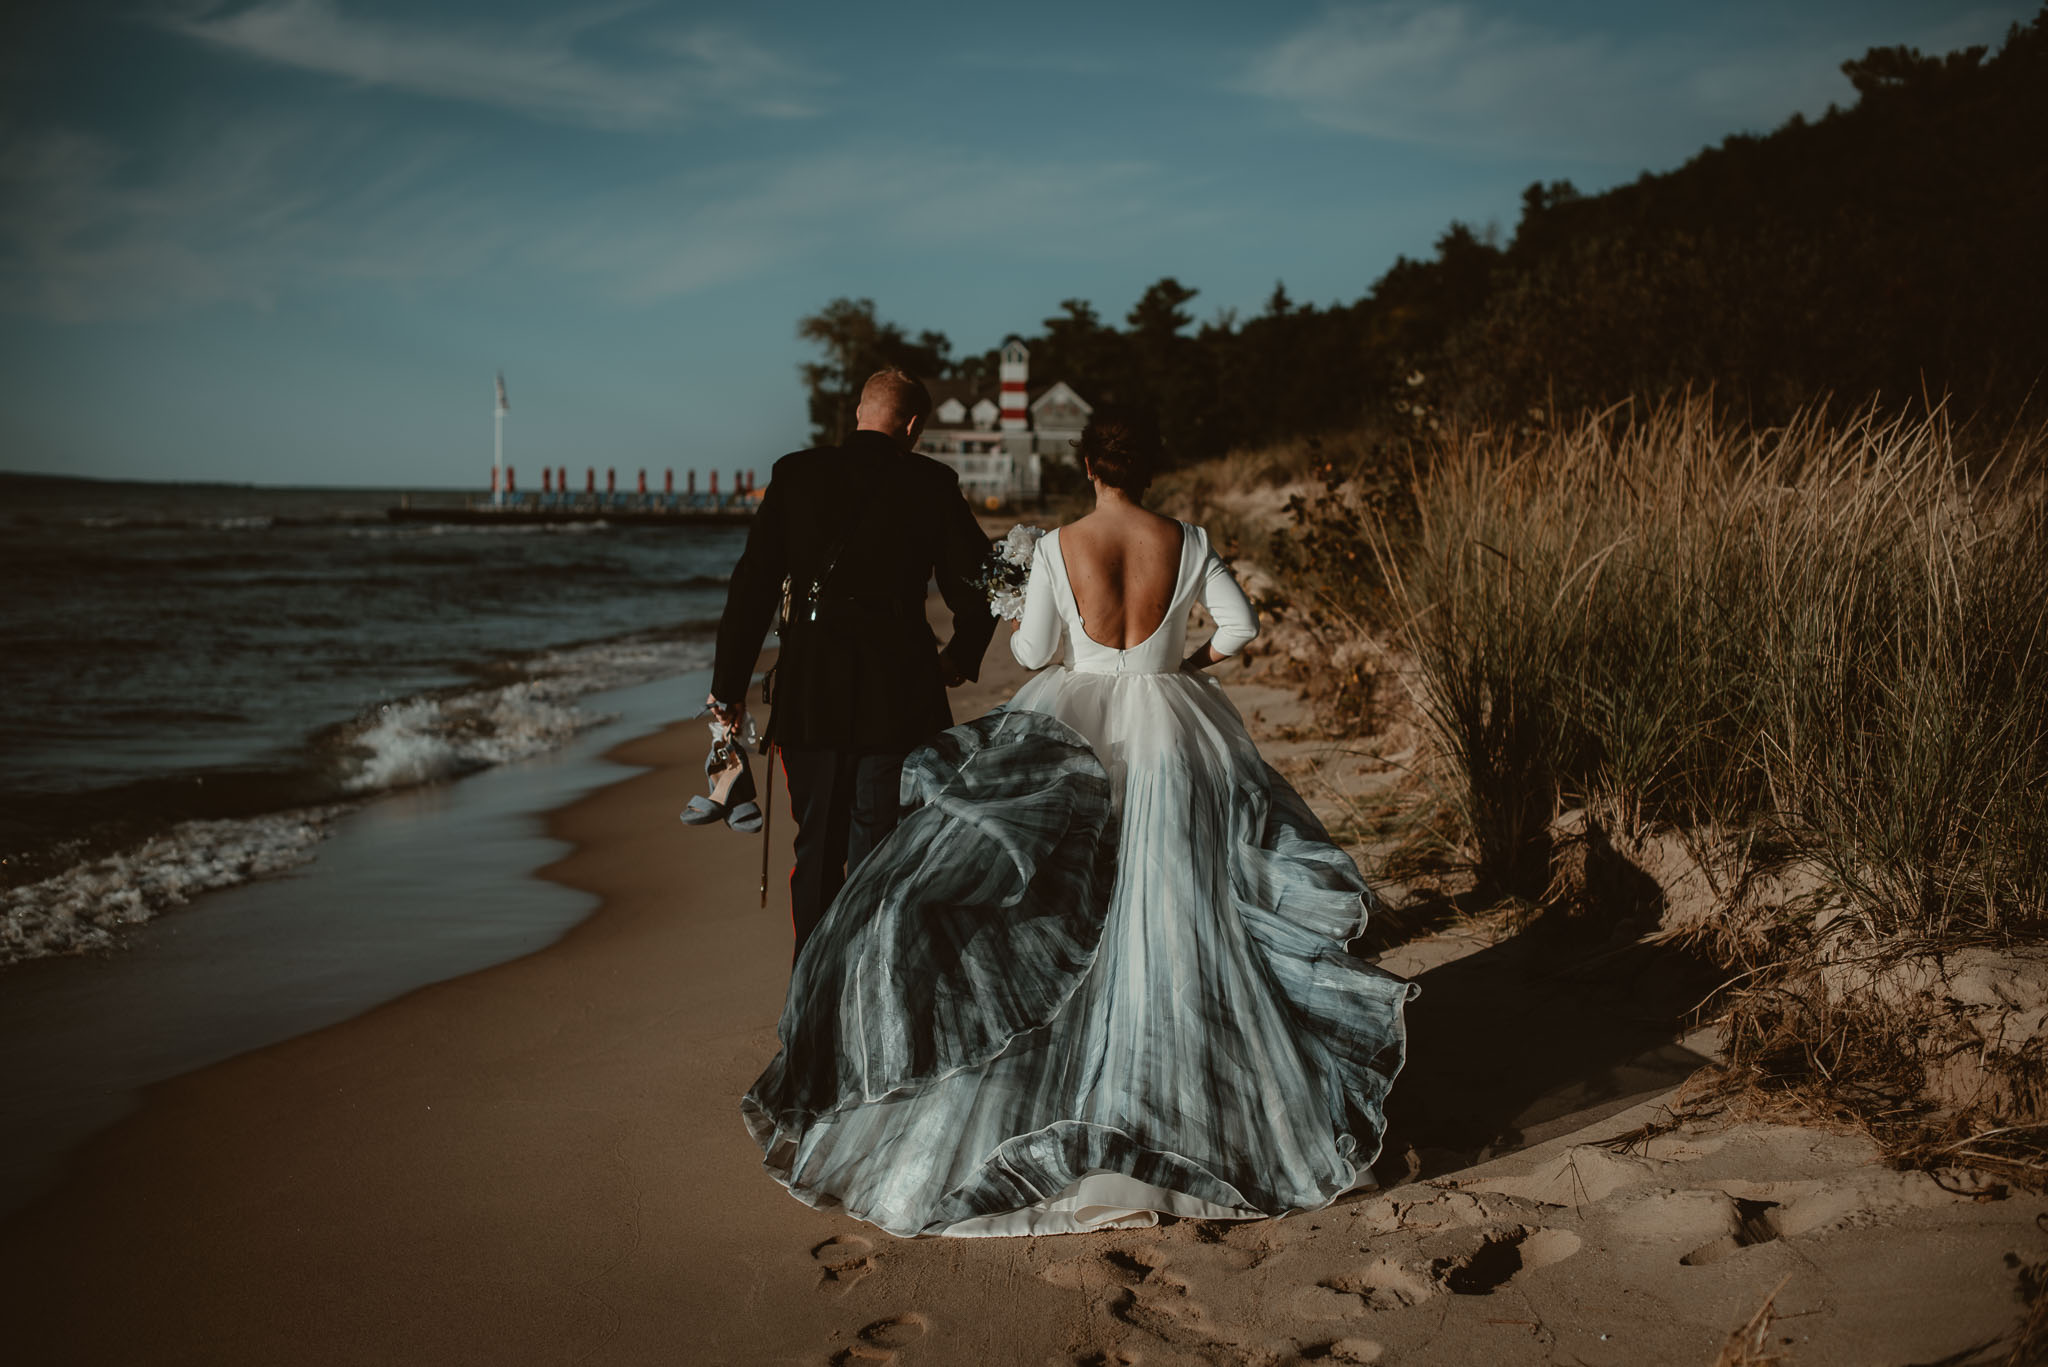 Groom in dress blues carrying brides shoes walking along sandy beach with dress flowing in wind.